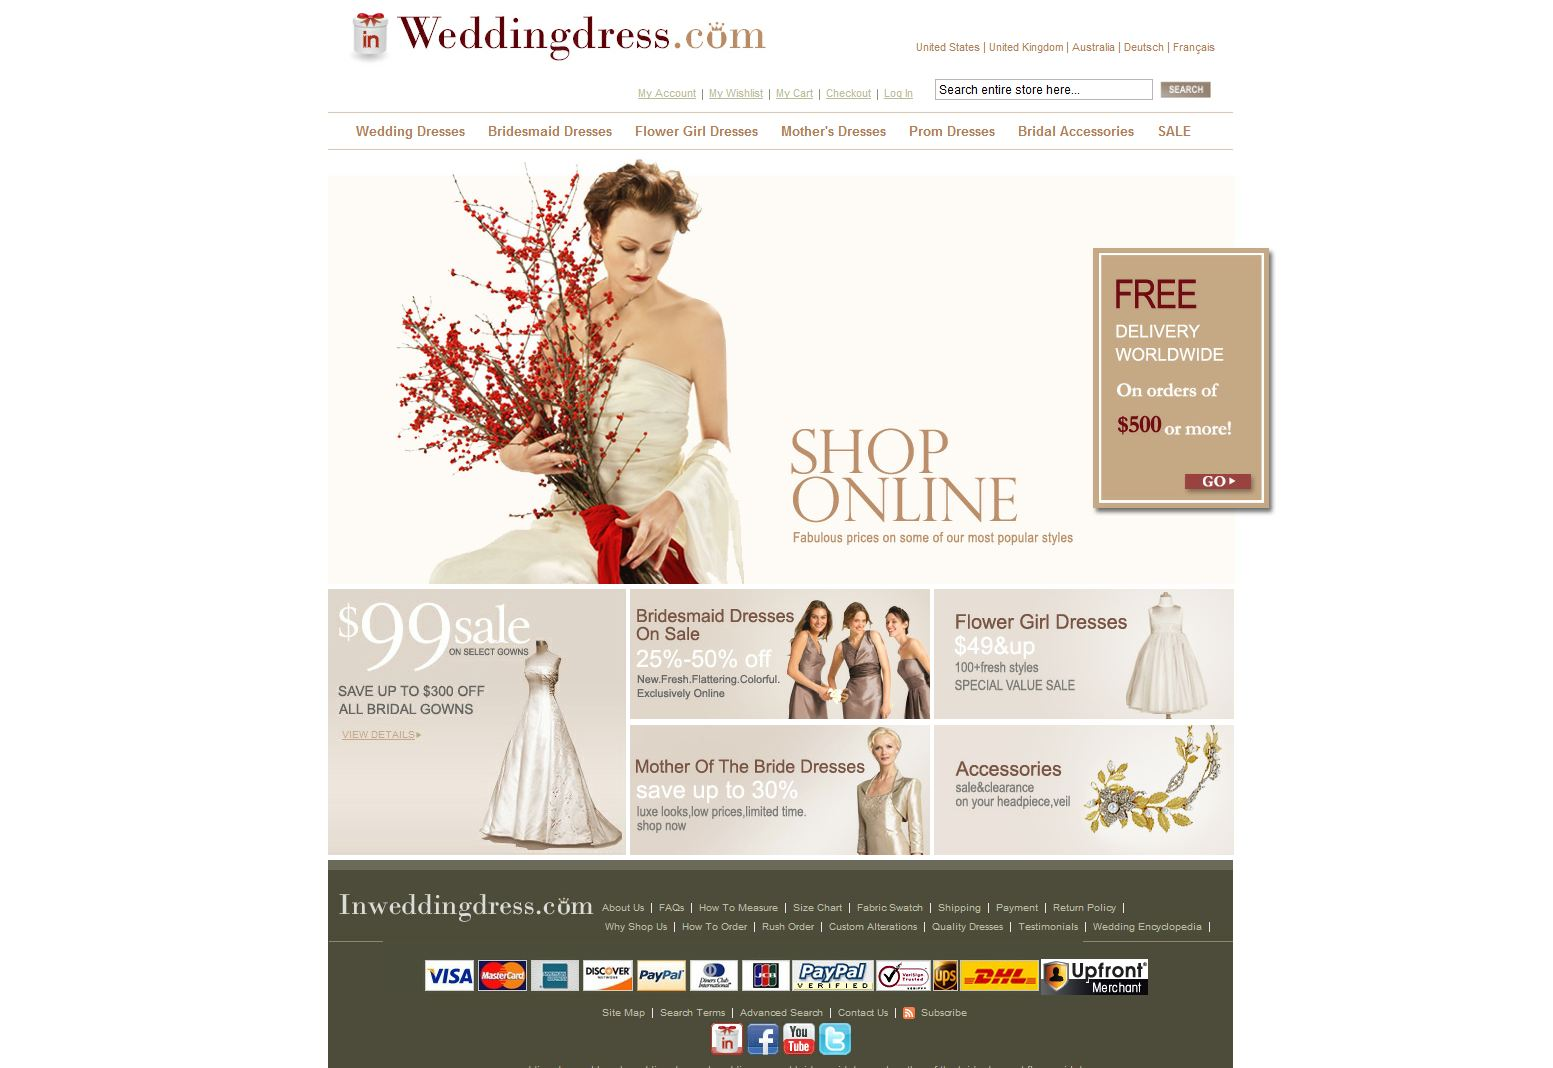 Inweddingdress